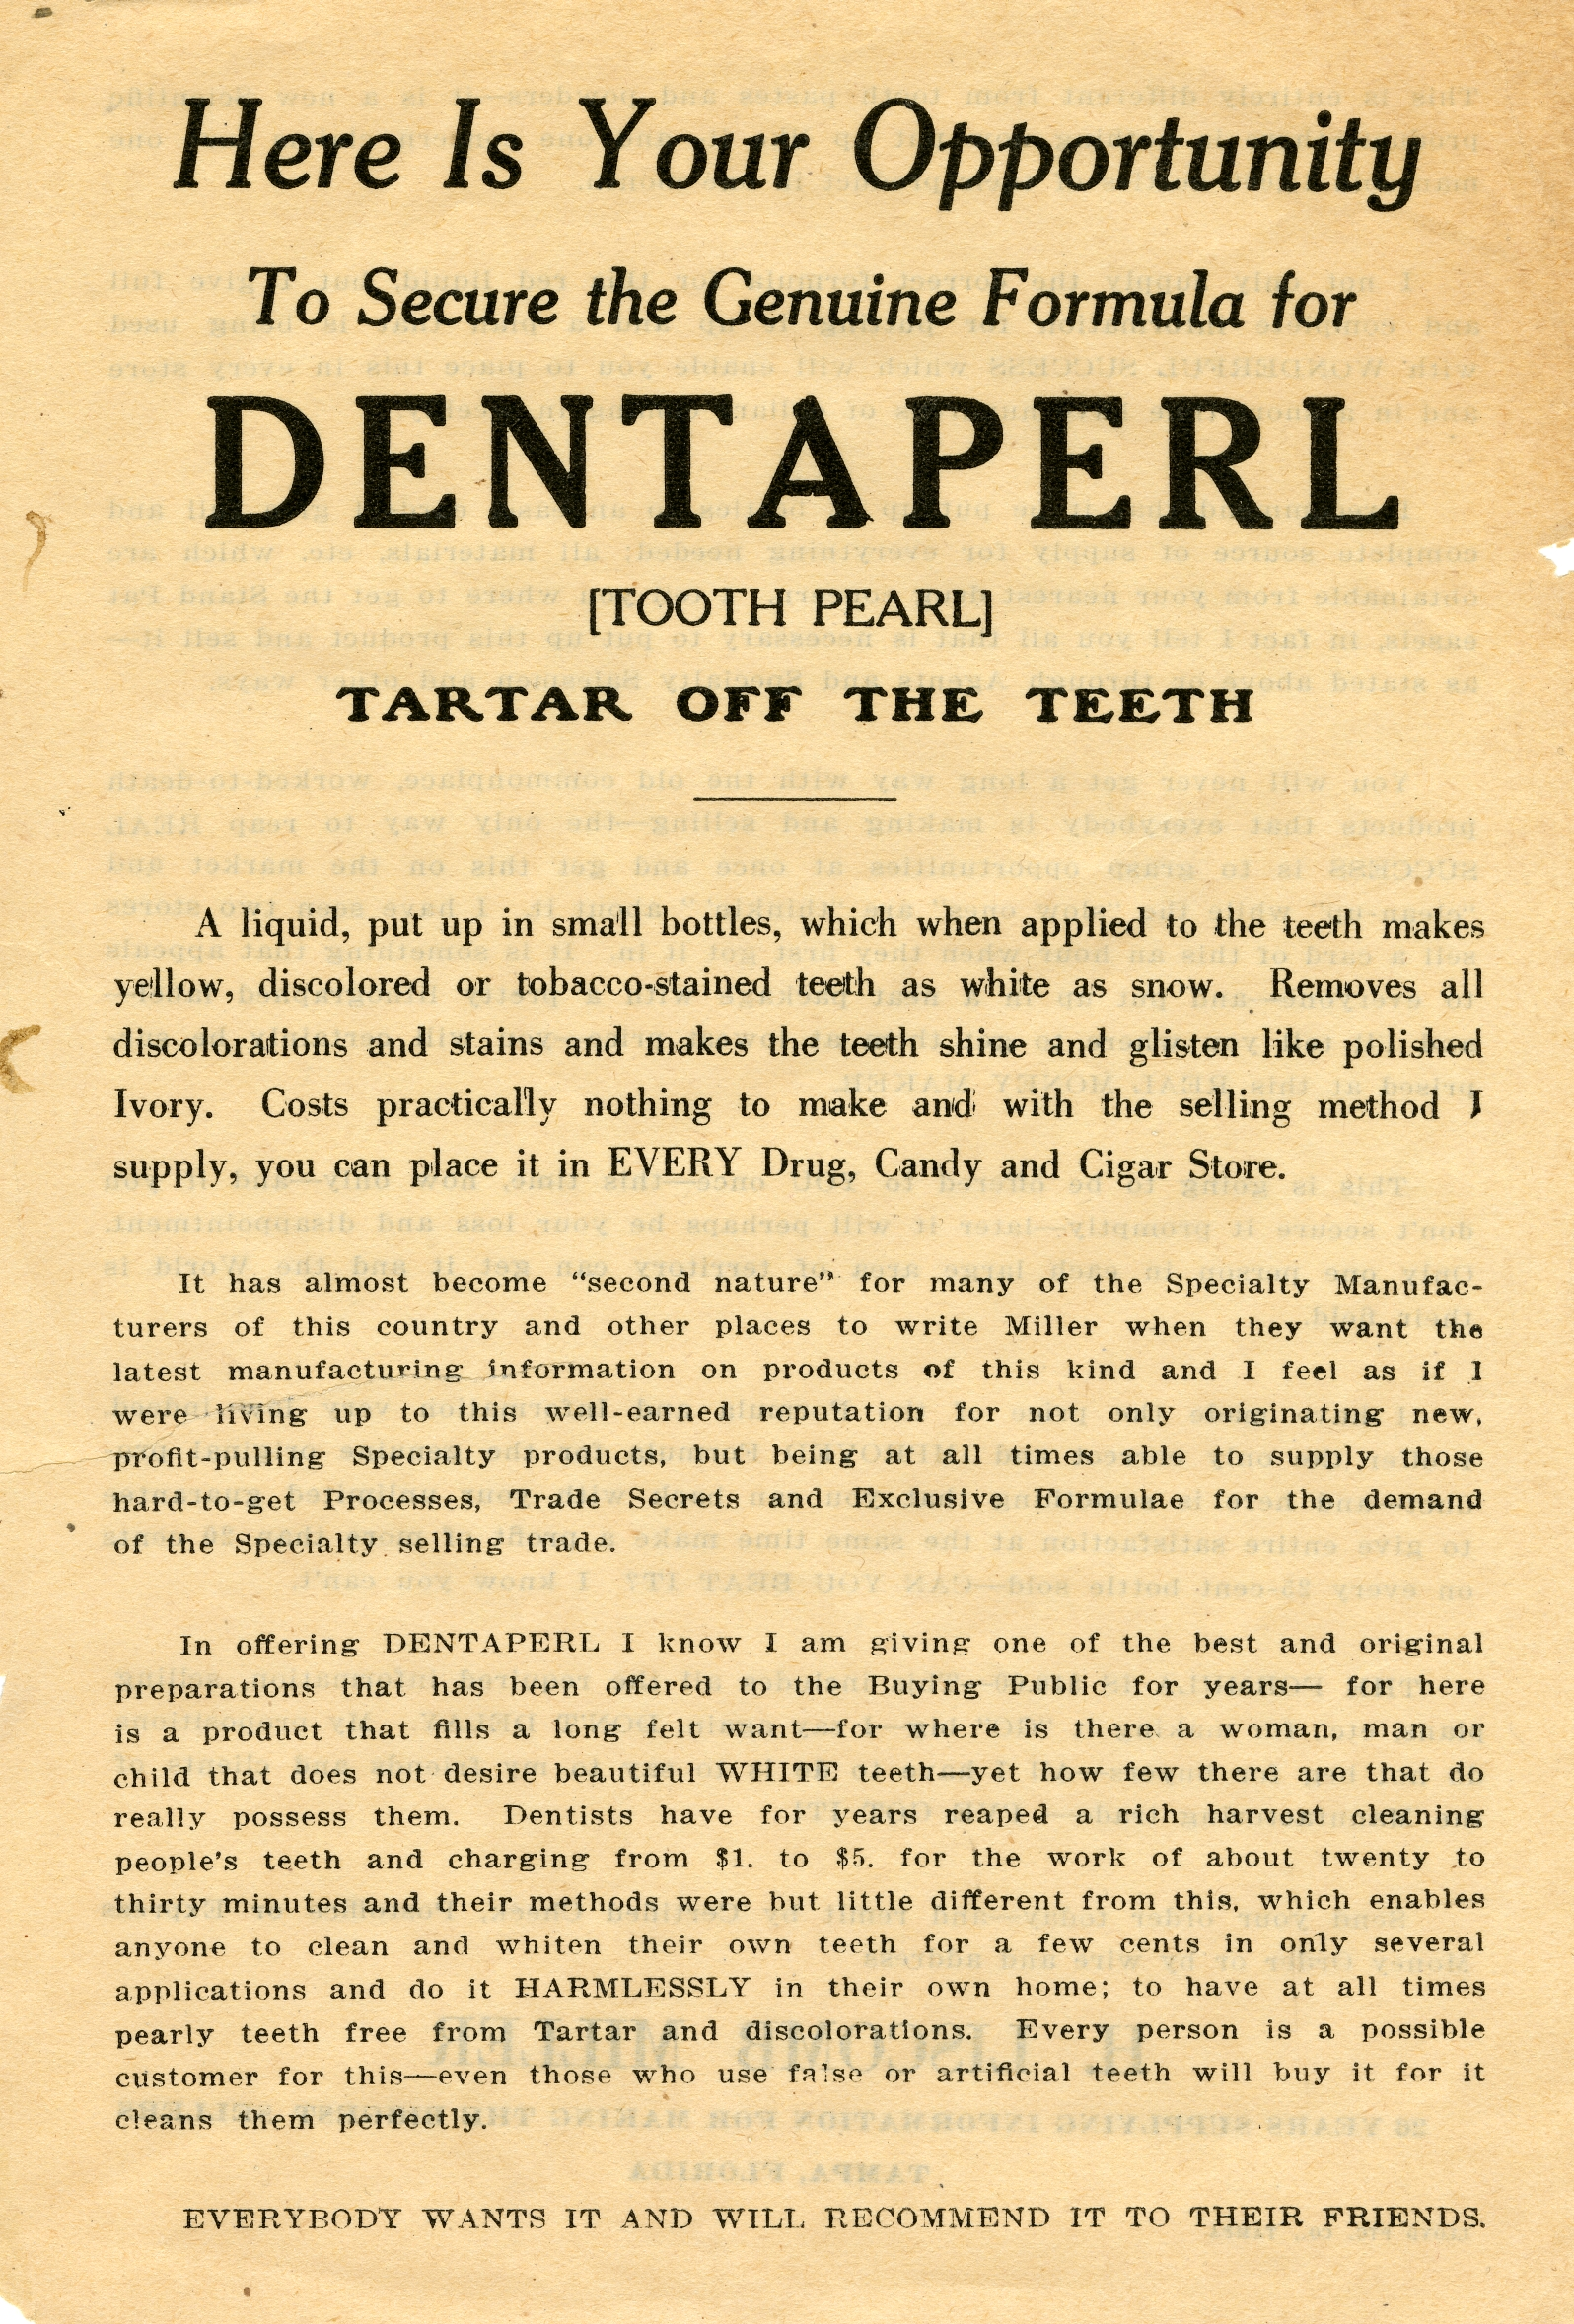 Here is your opportunity to secure the genuine formula for Dentaperl [tooth pearl] tartar off the teeth.